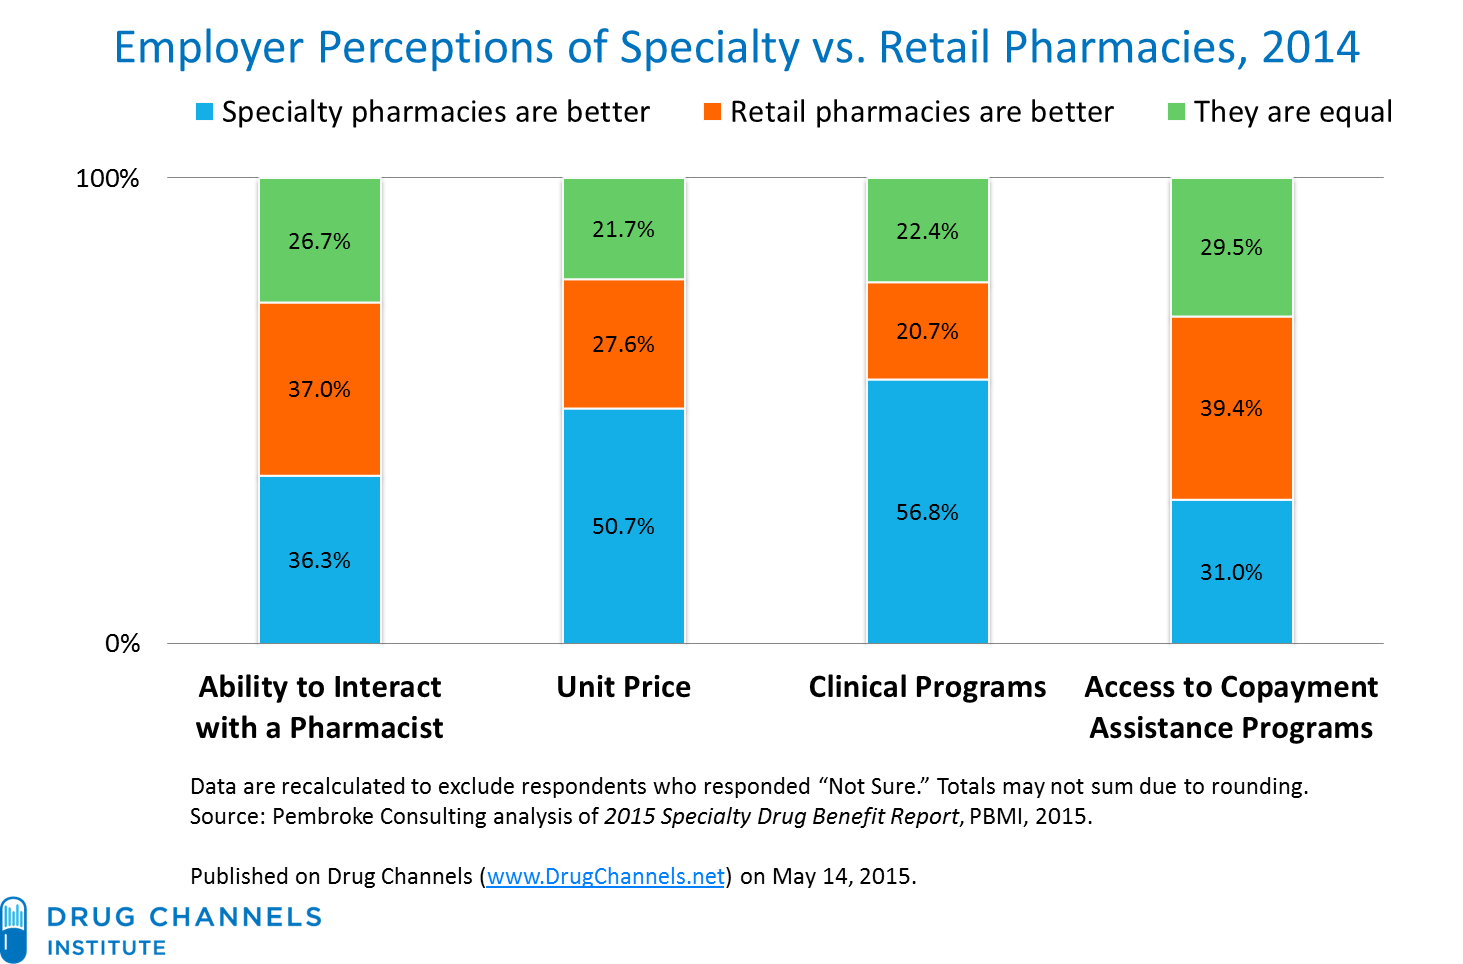 channels employers see differences between specialty